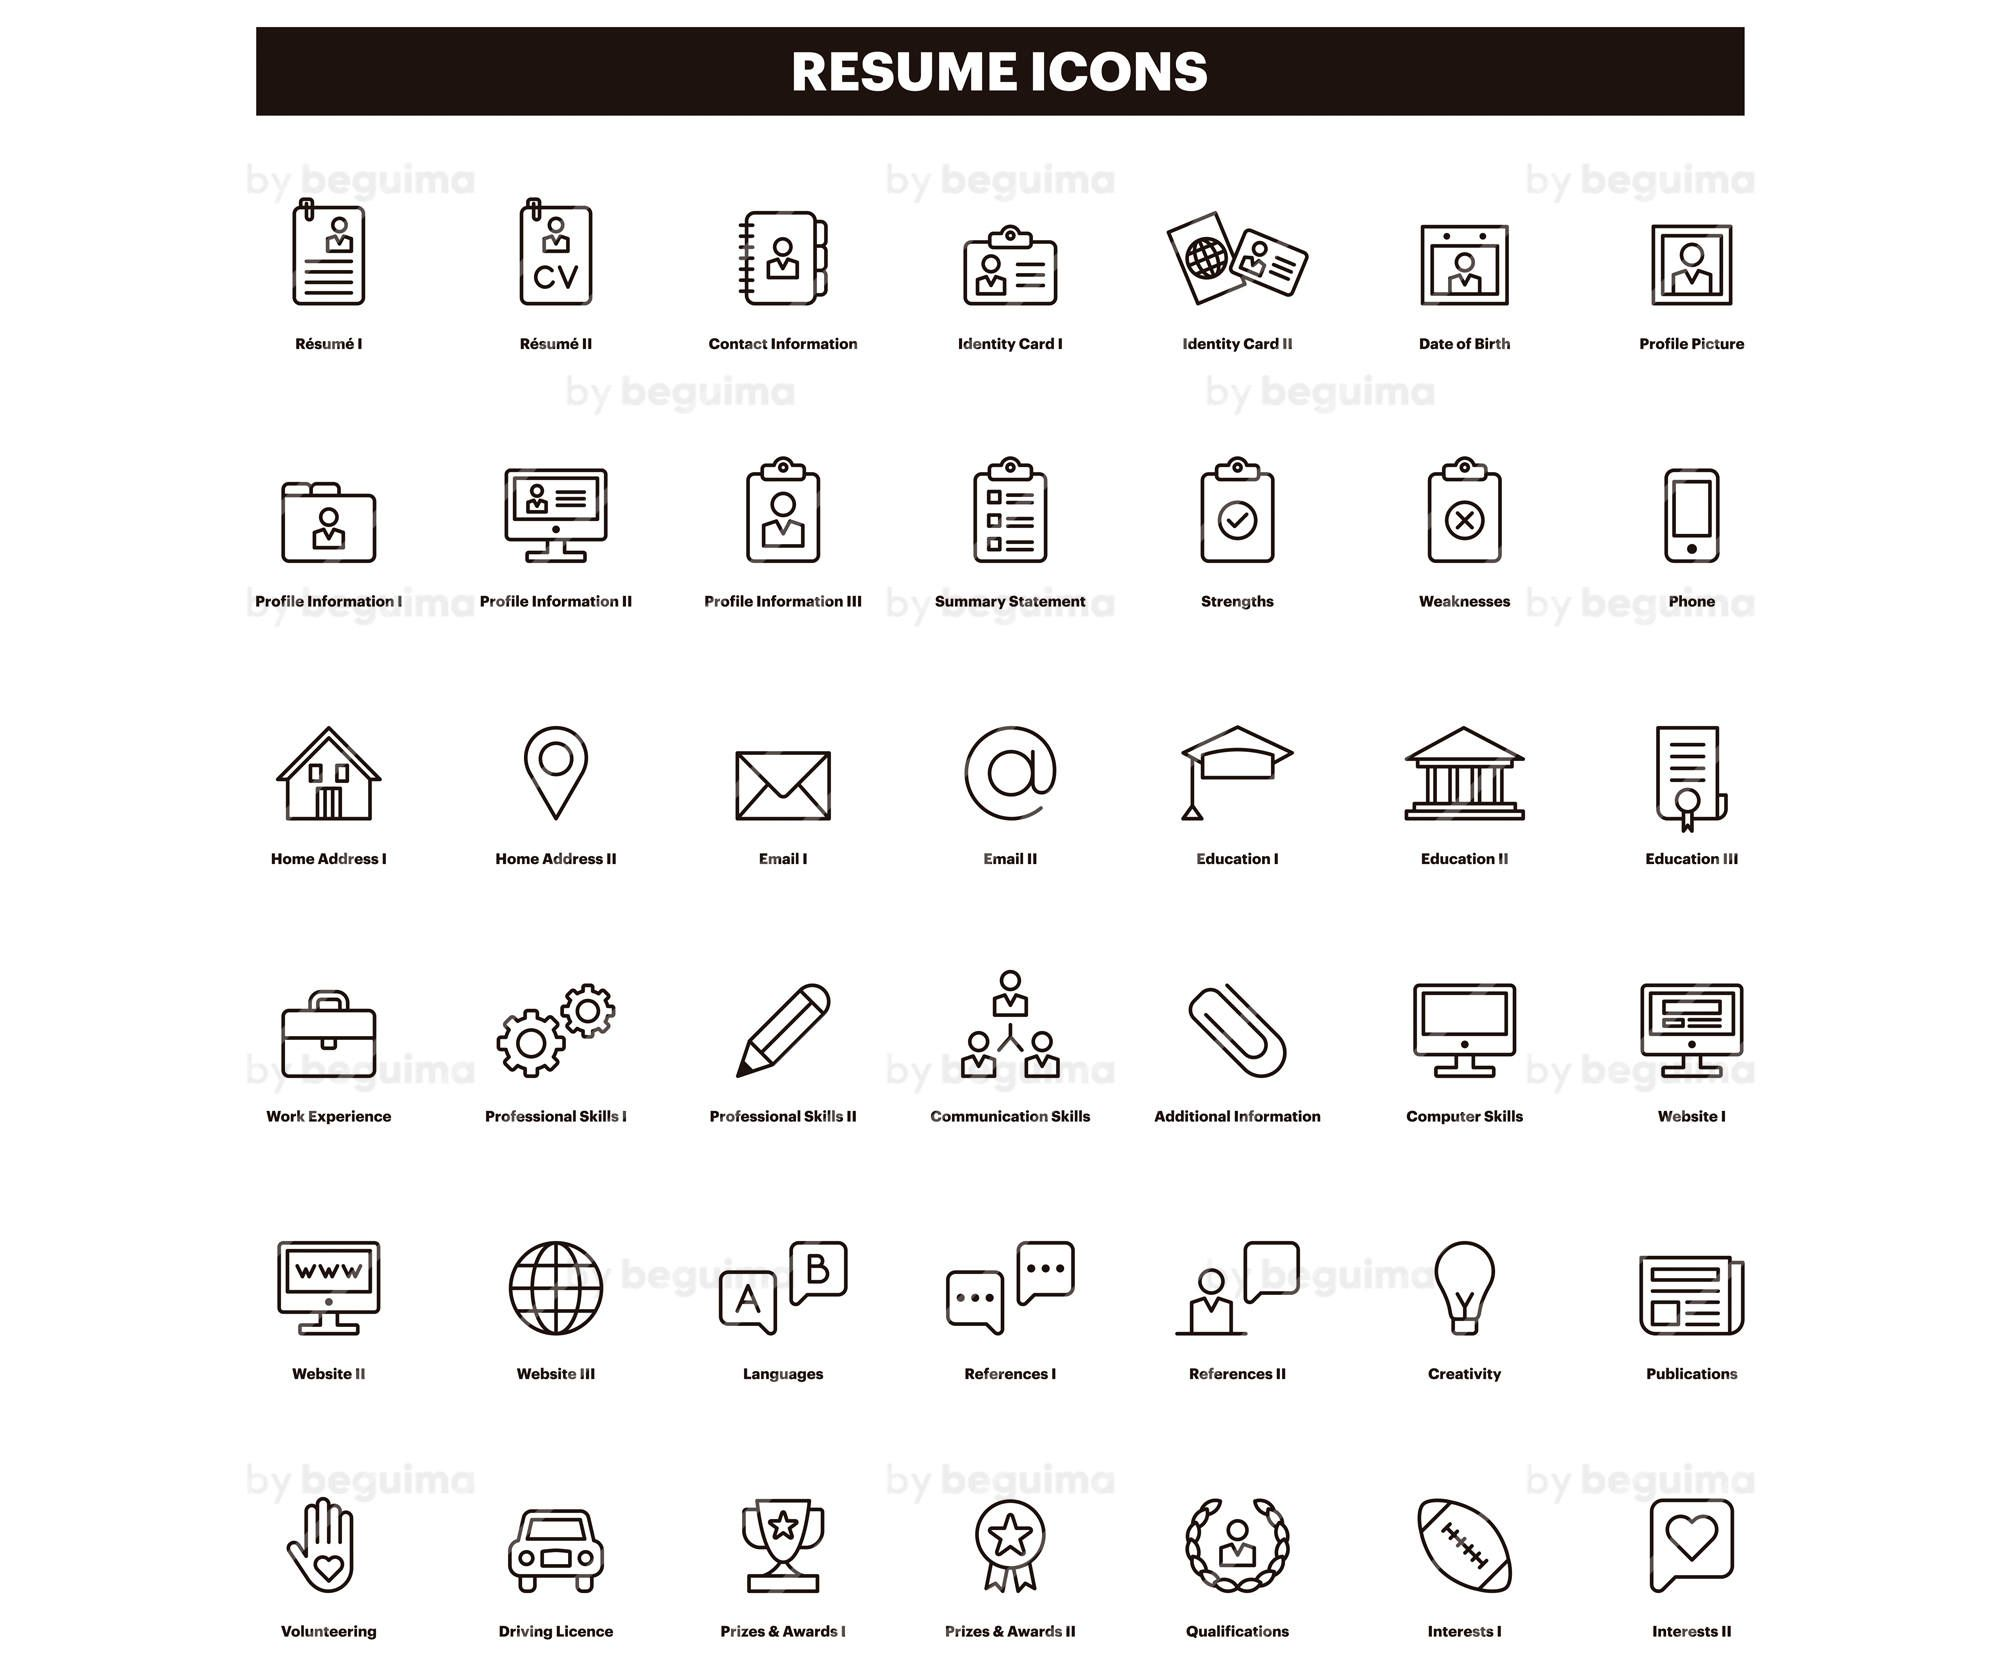 Resumeiconscvclip Artcurriculum Vitaeclipartset Of Etsy Resume Icons Clip Art Icon